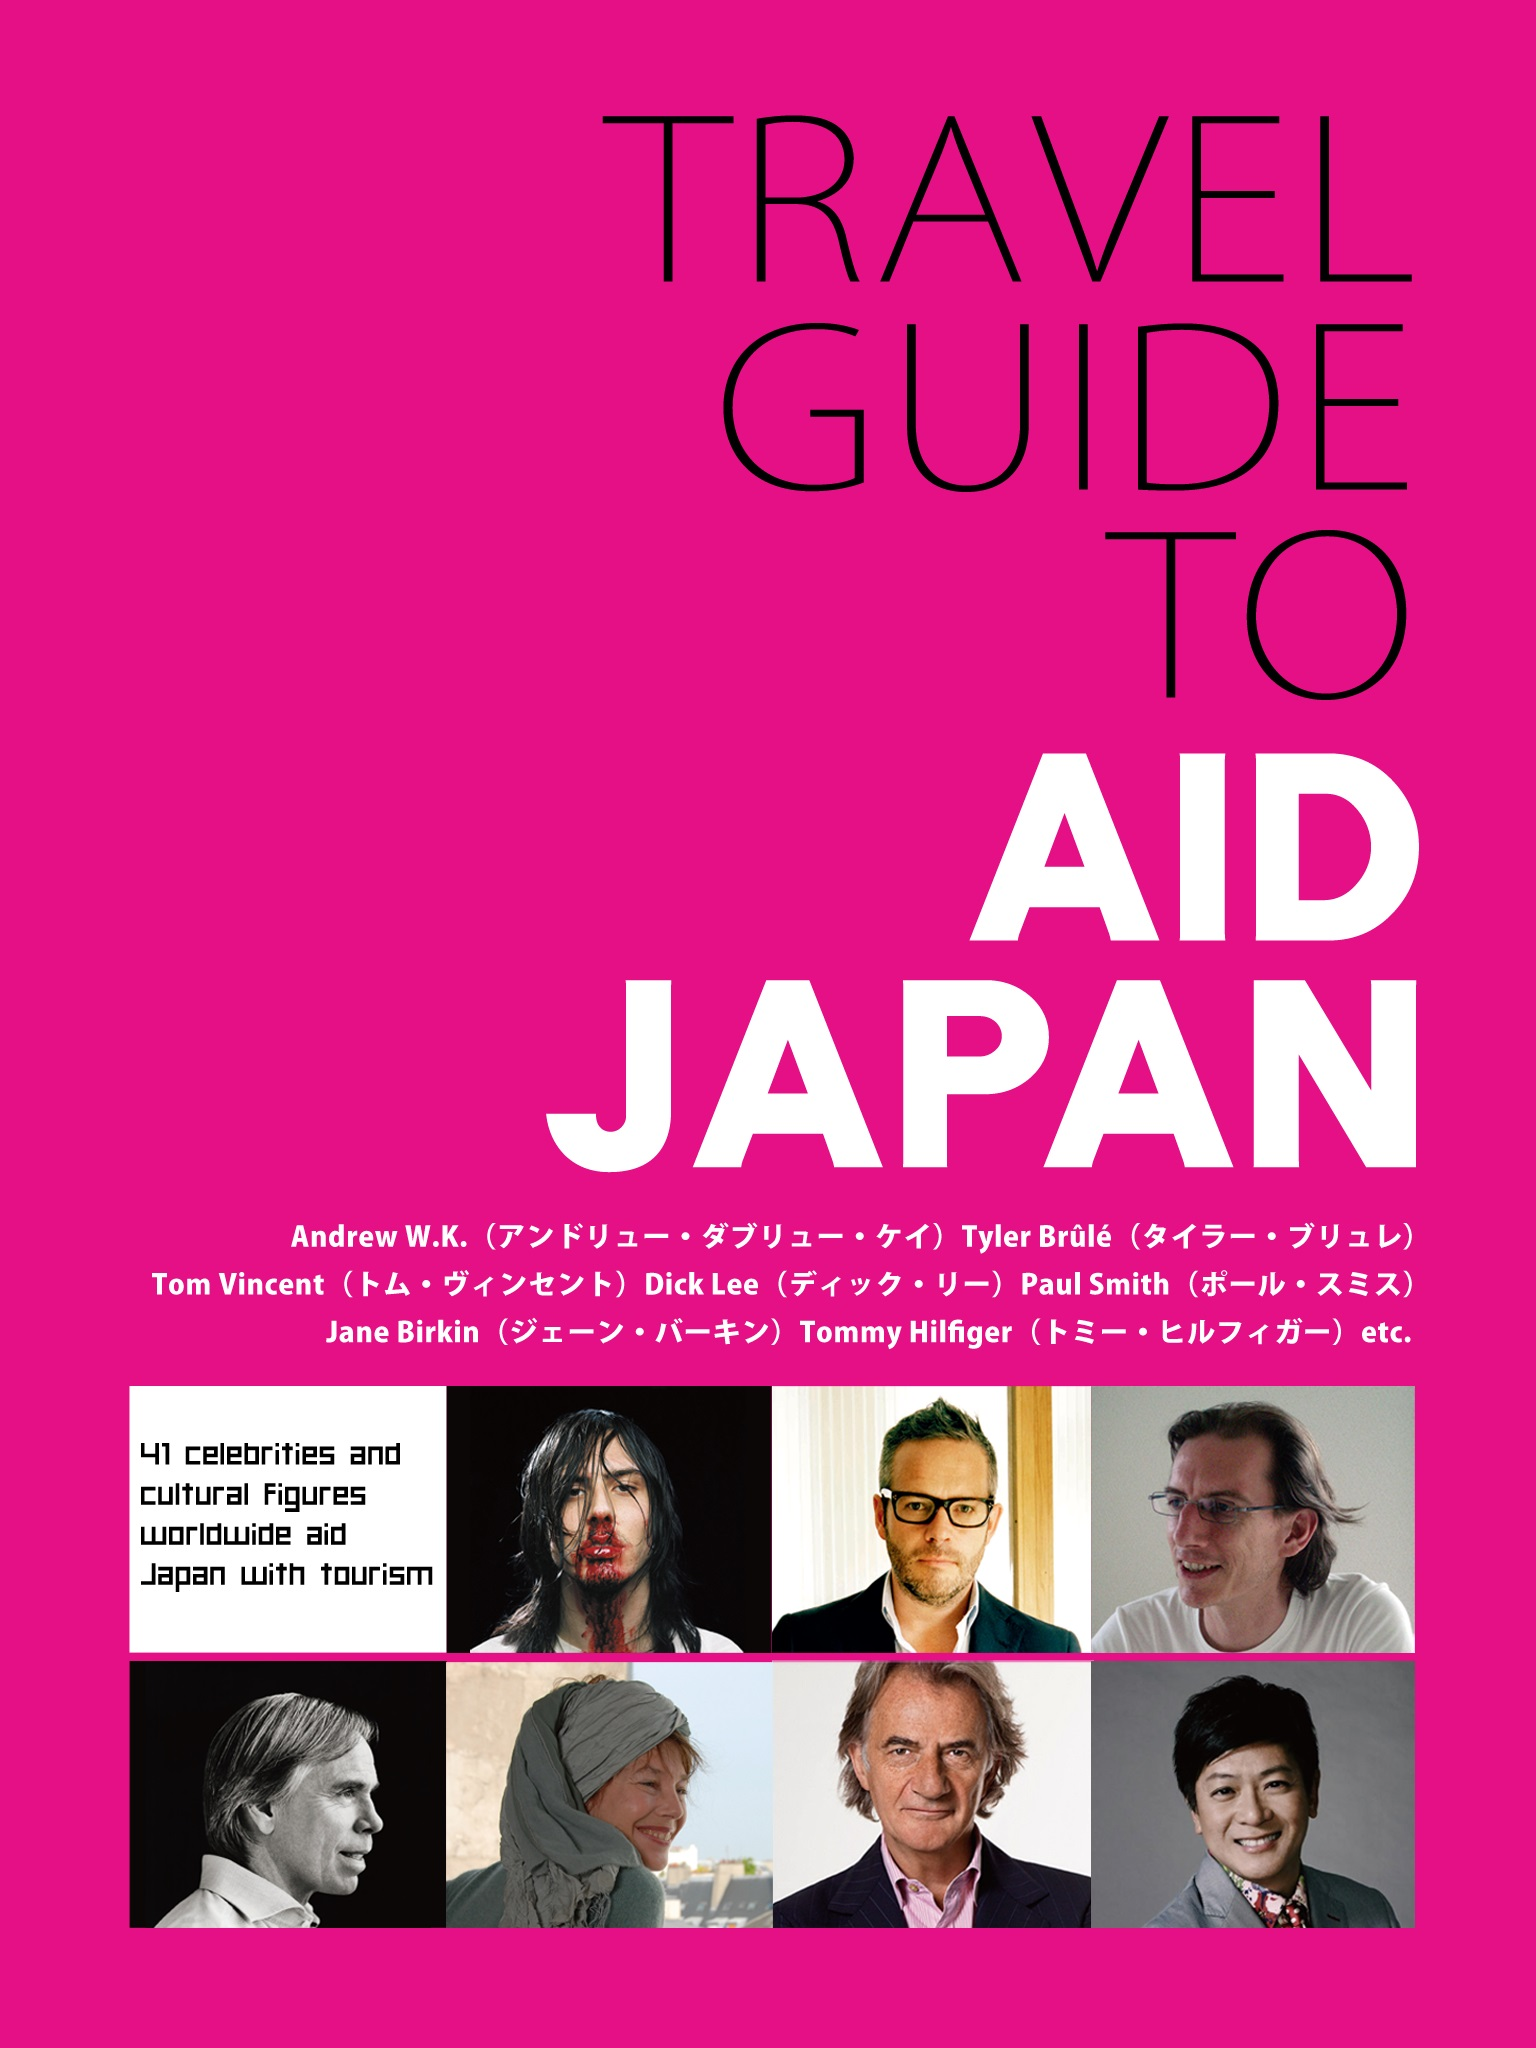 TRAVEL GUIDE TO AID JAPAN